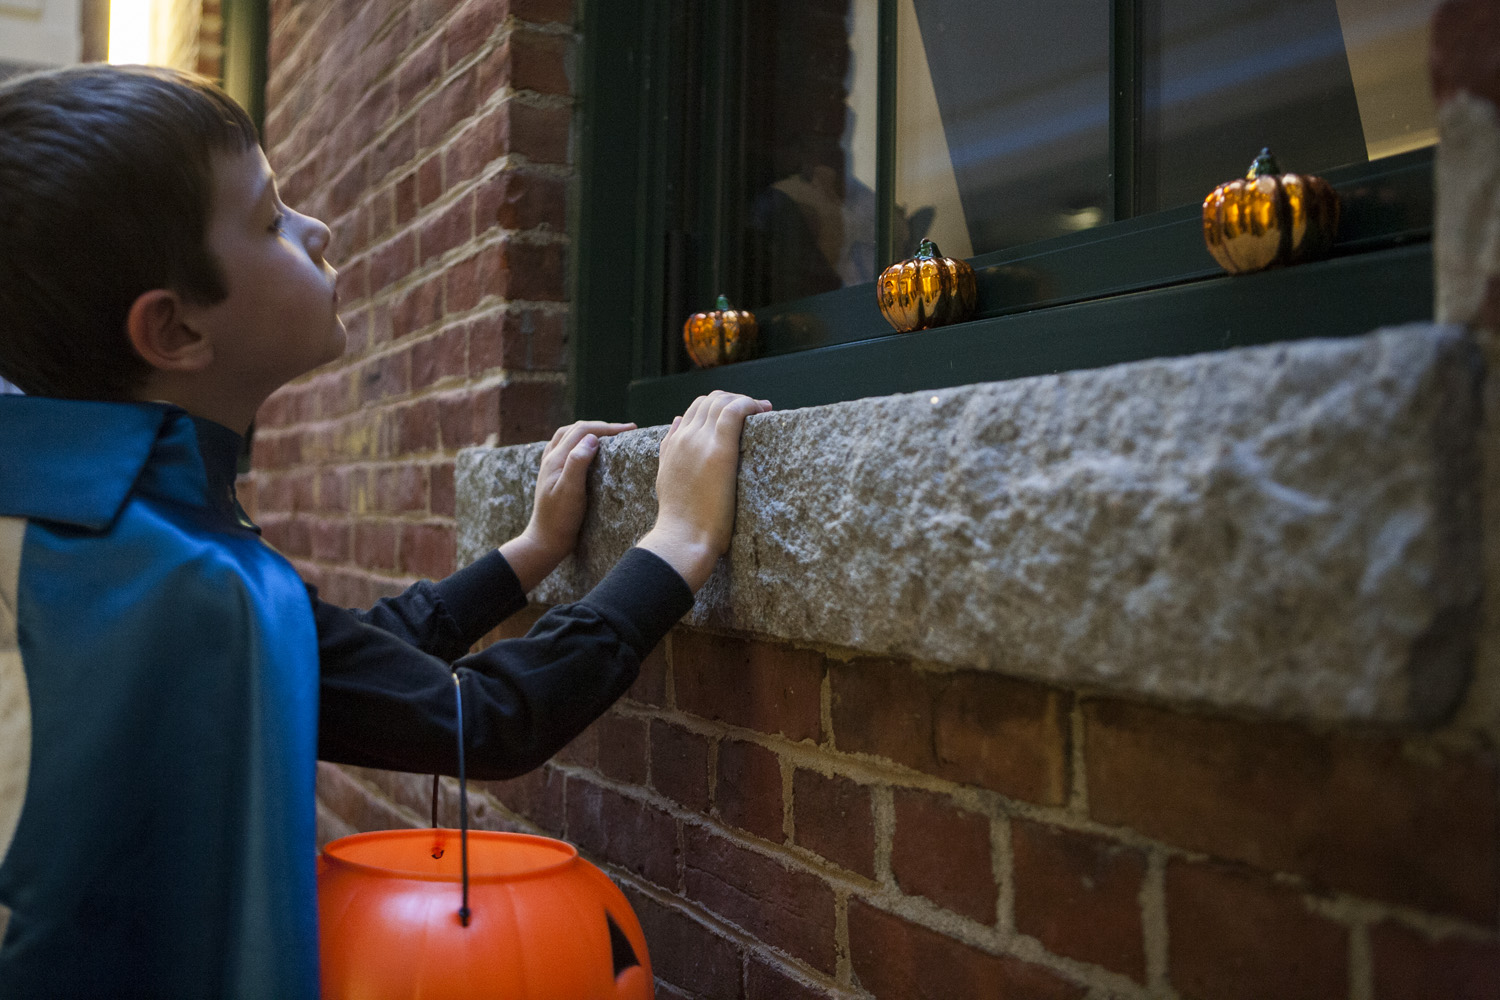 learn good customer service skills from trick treating